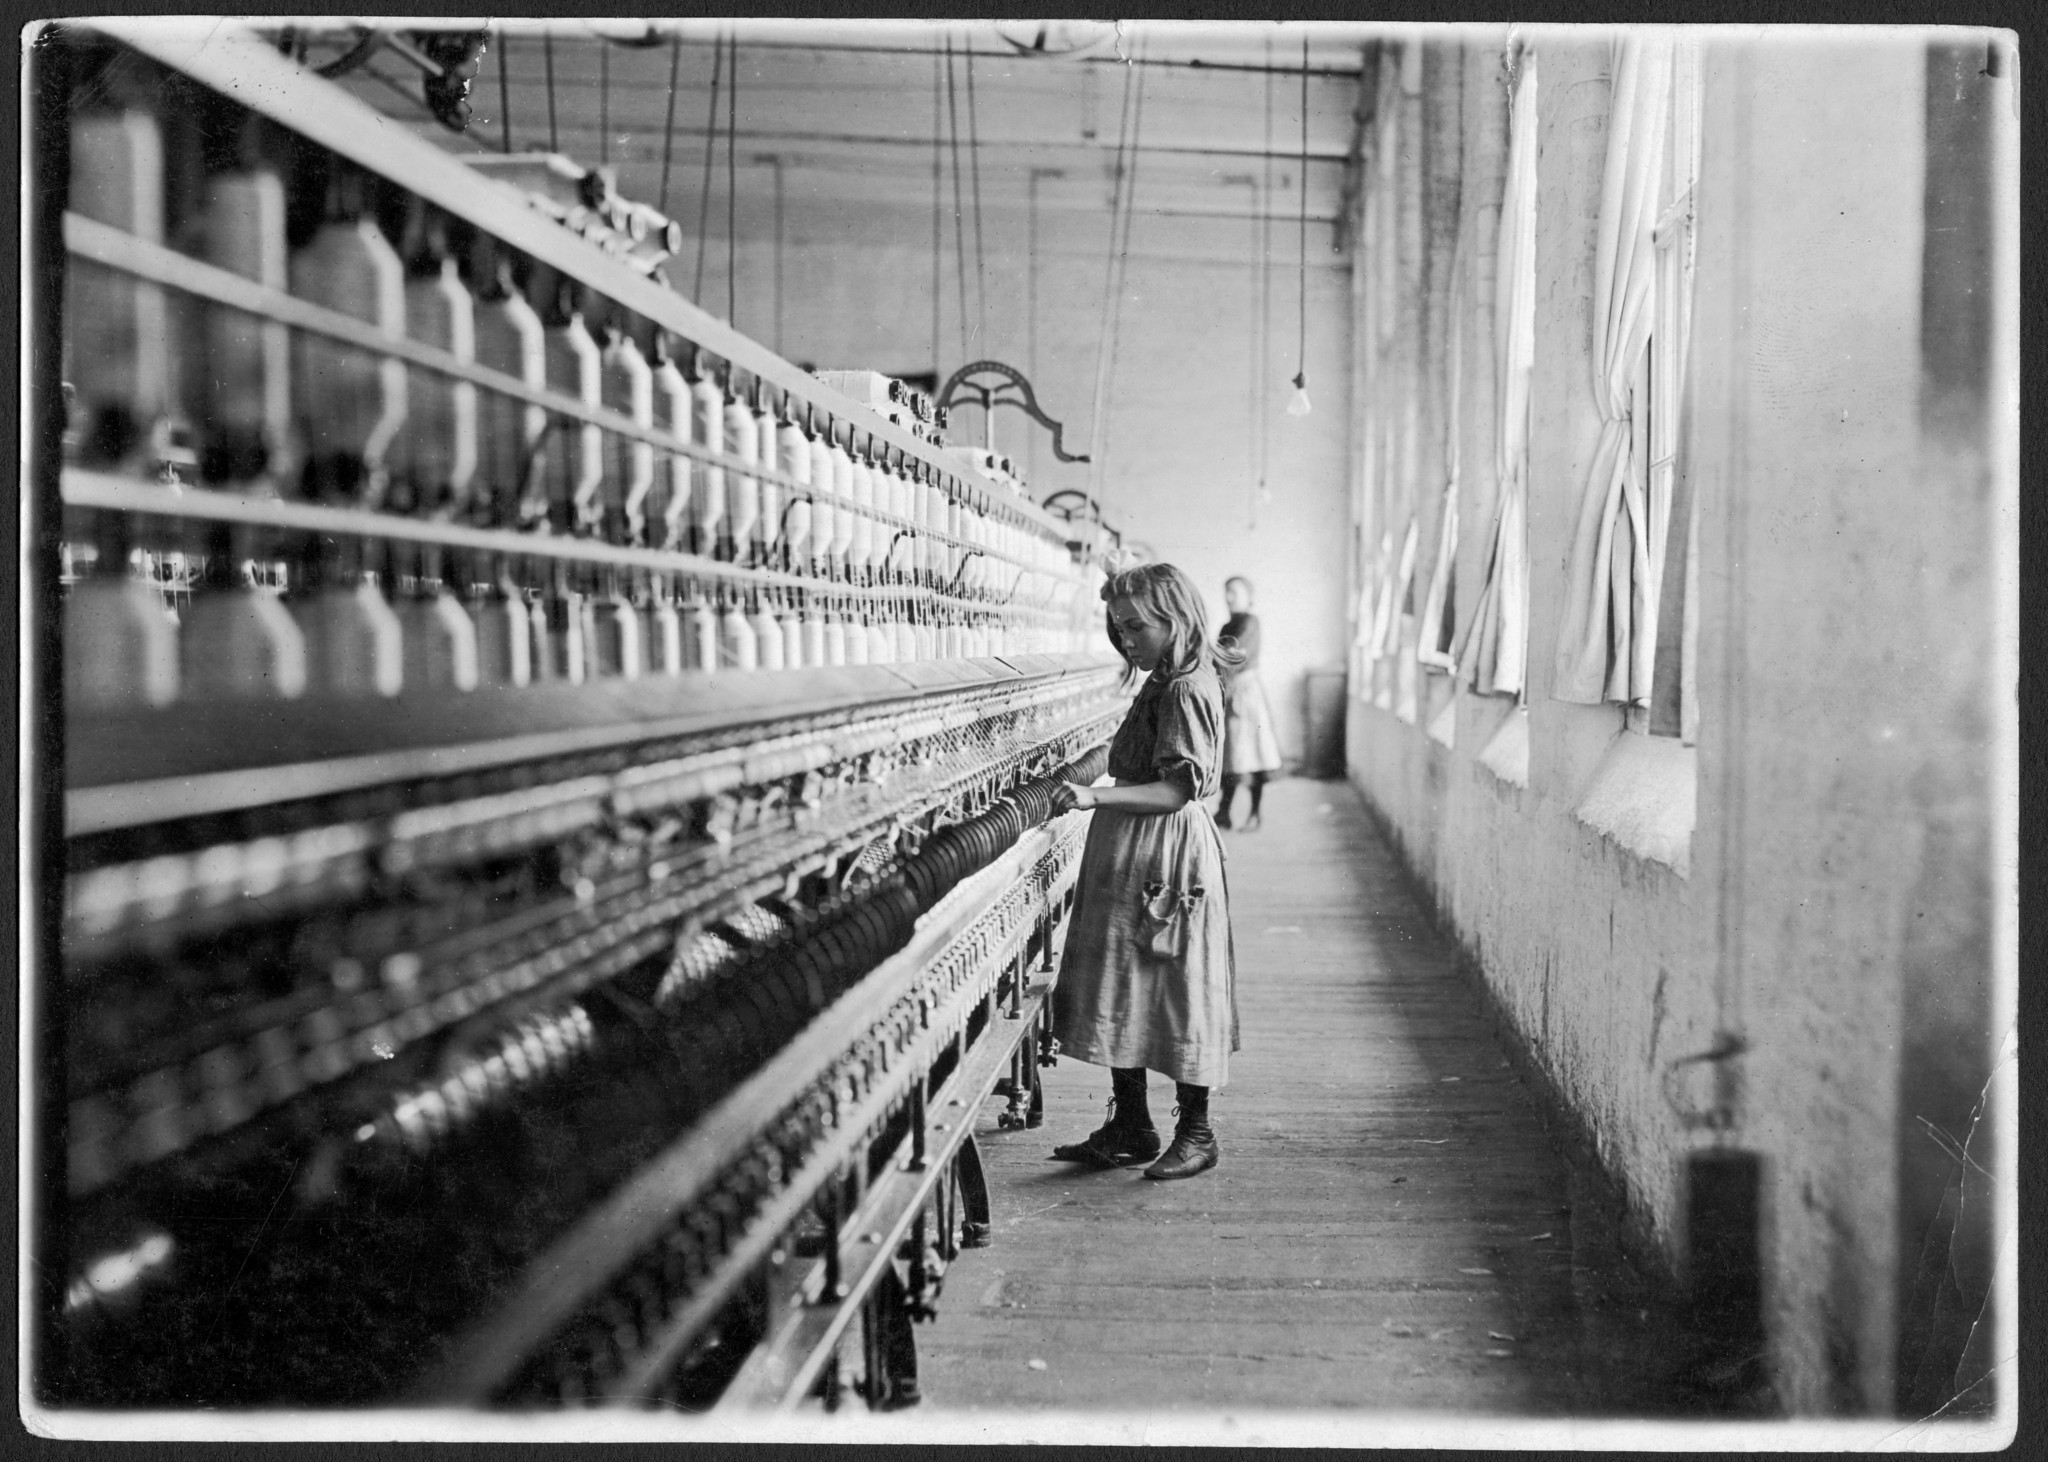 Compelling photographs tell the story of Lewis Wickes Hine